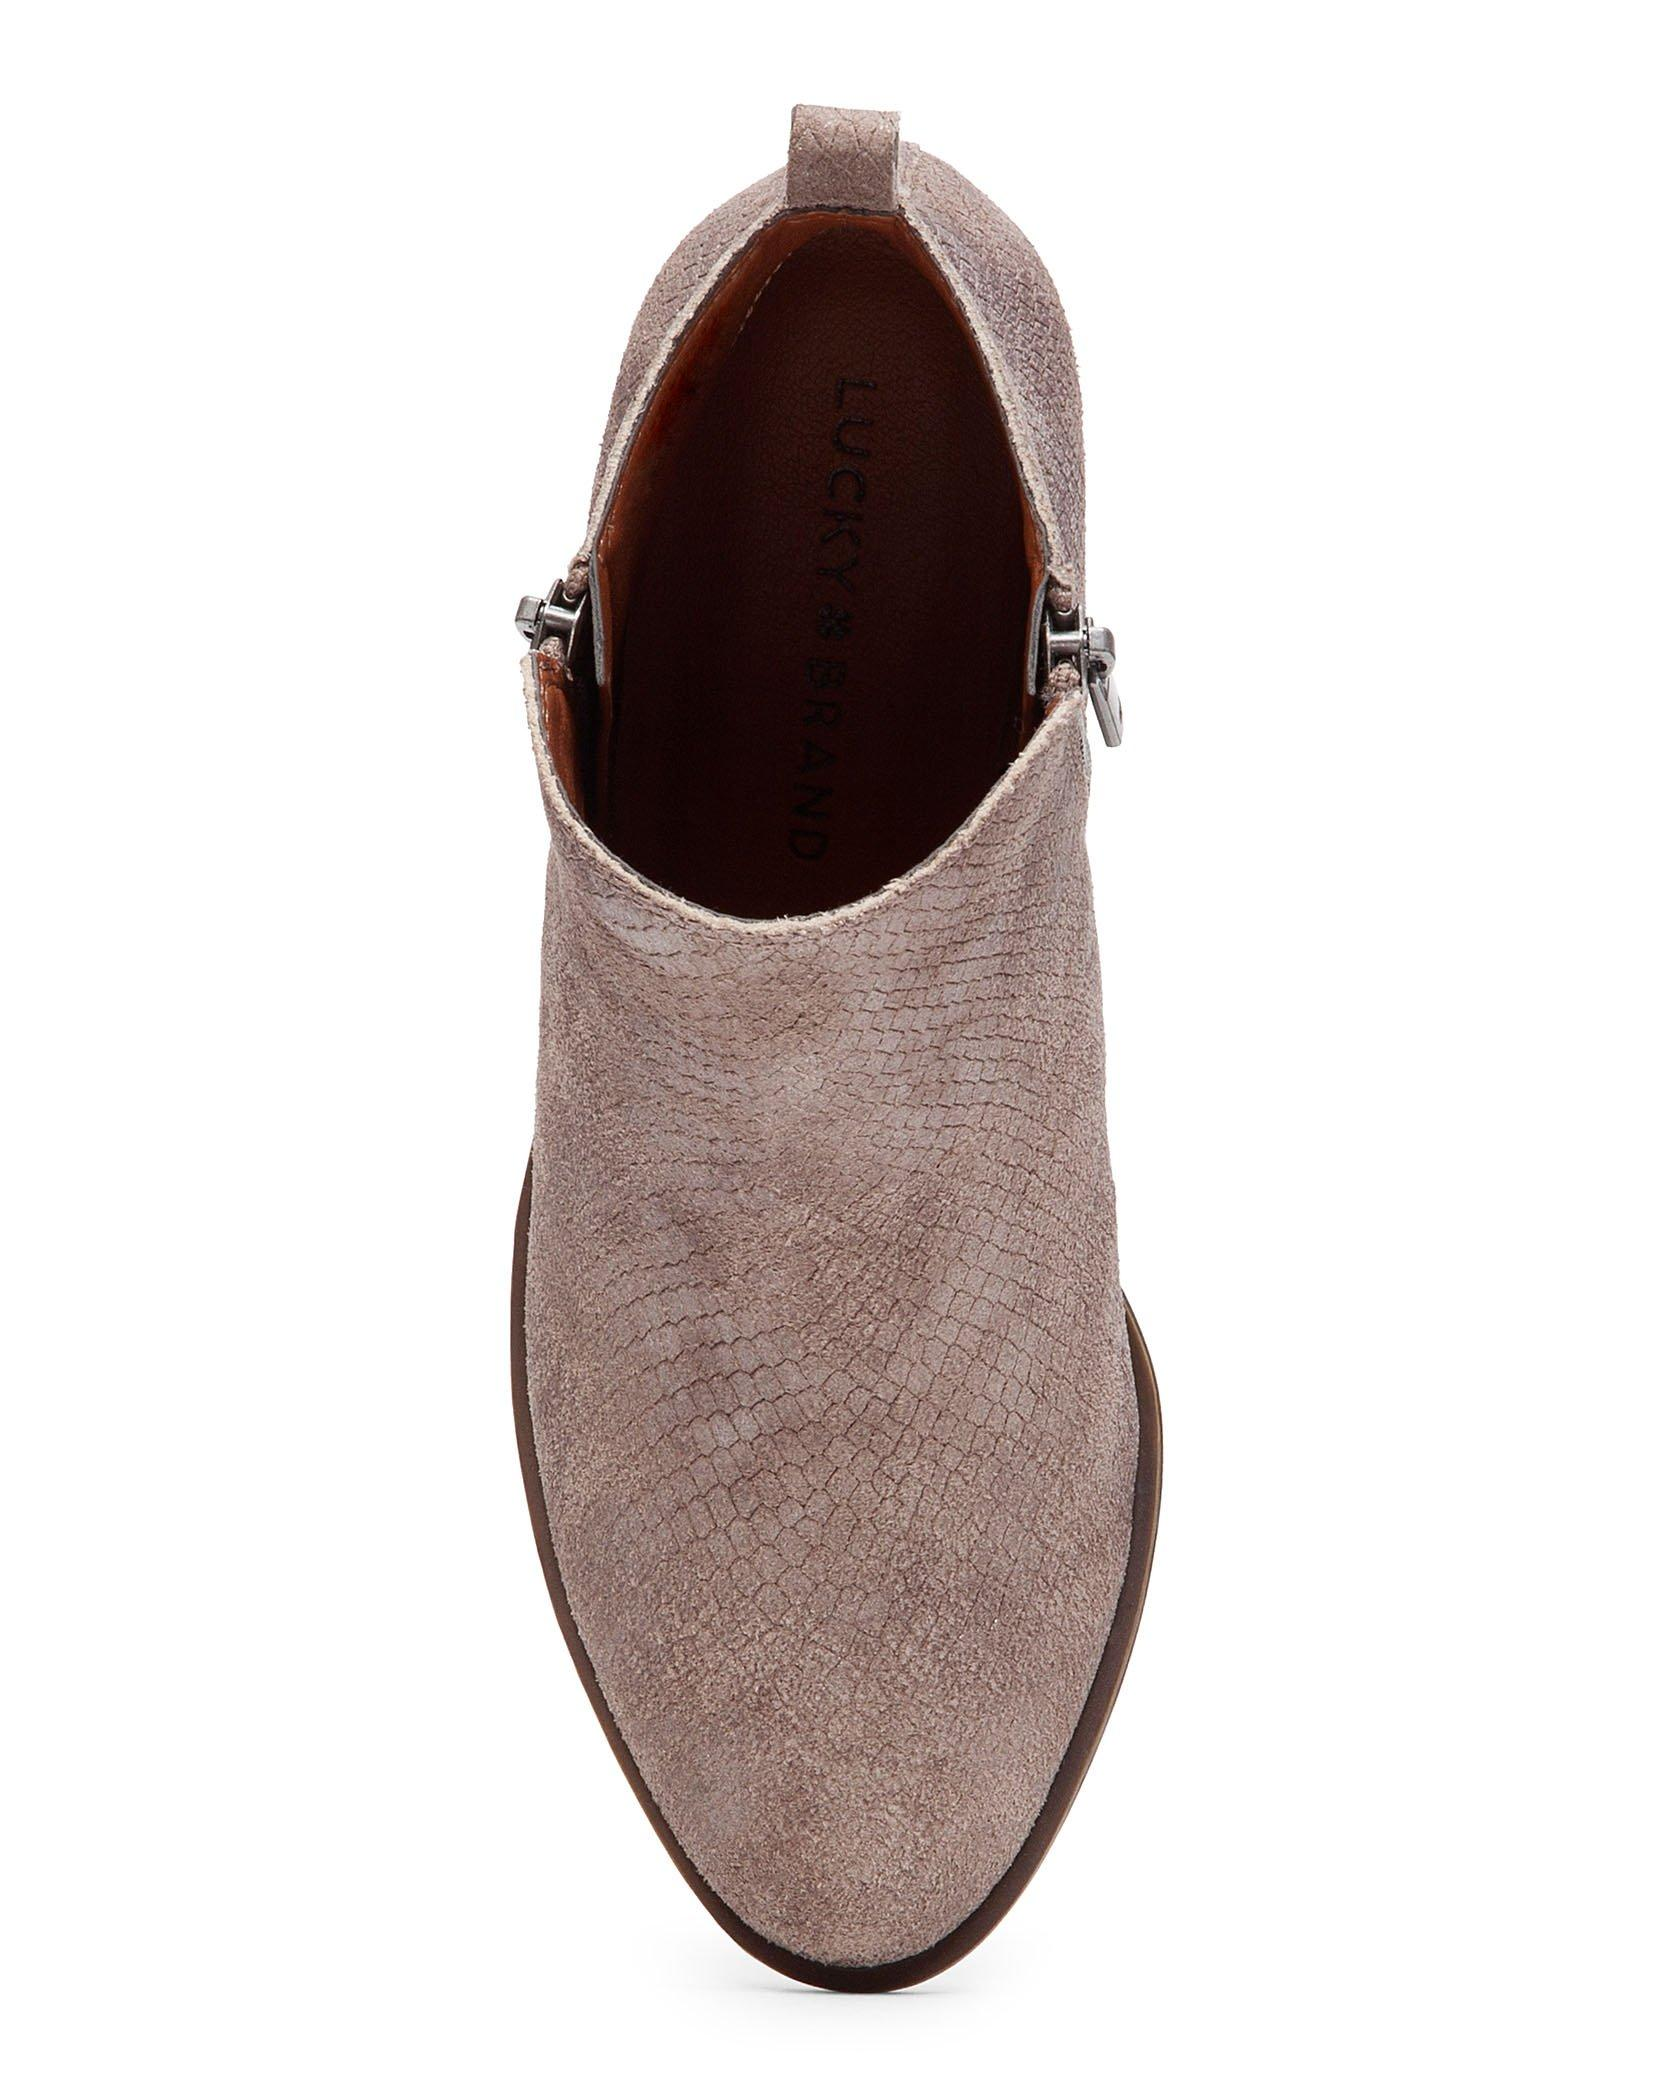 BASEL LEATHER FLAT BOOTIE, image 4